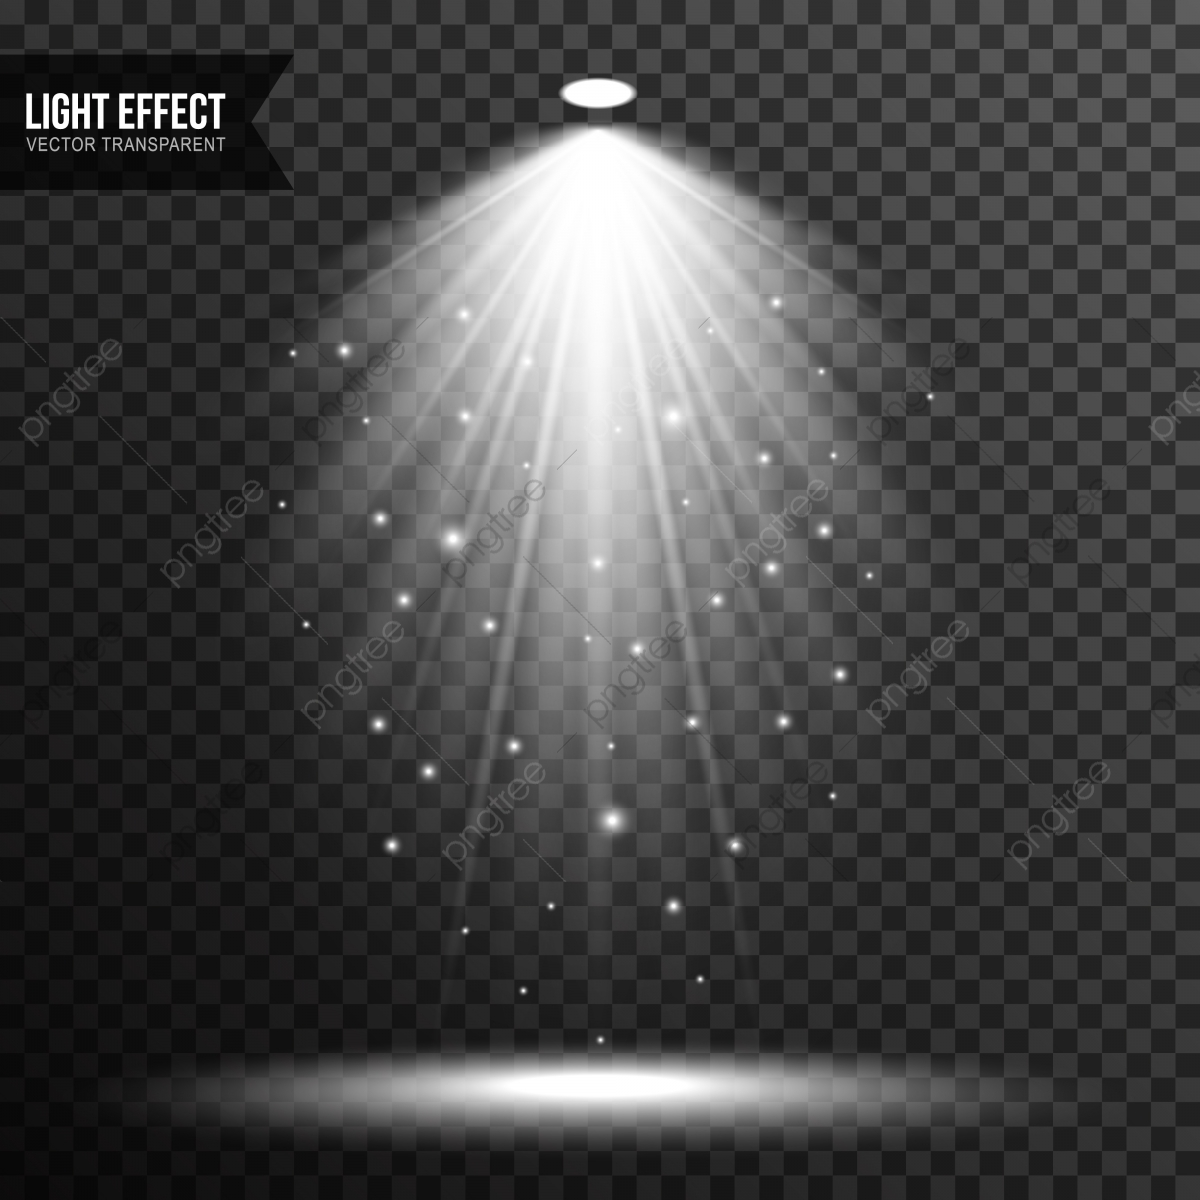 sc u00e8ne lumineux effets de lumi u00e8re vector transparent